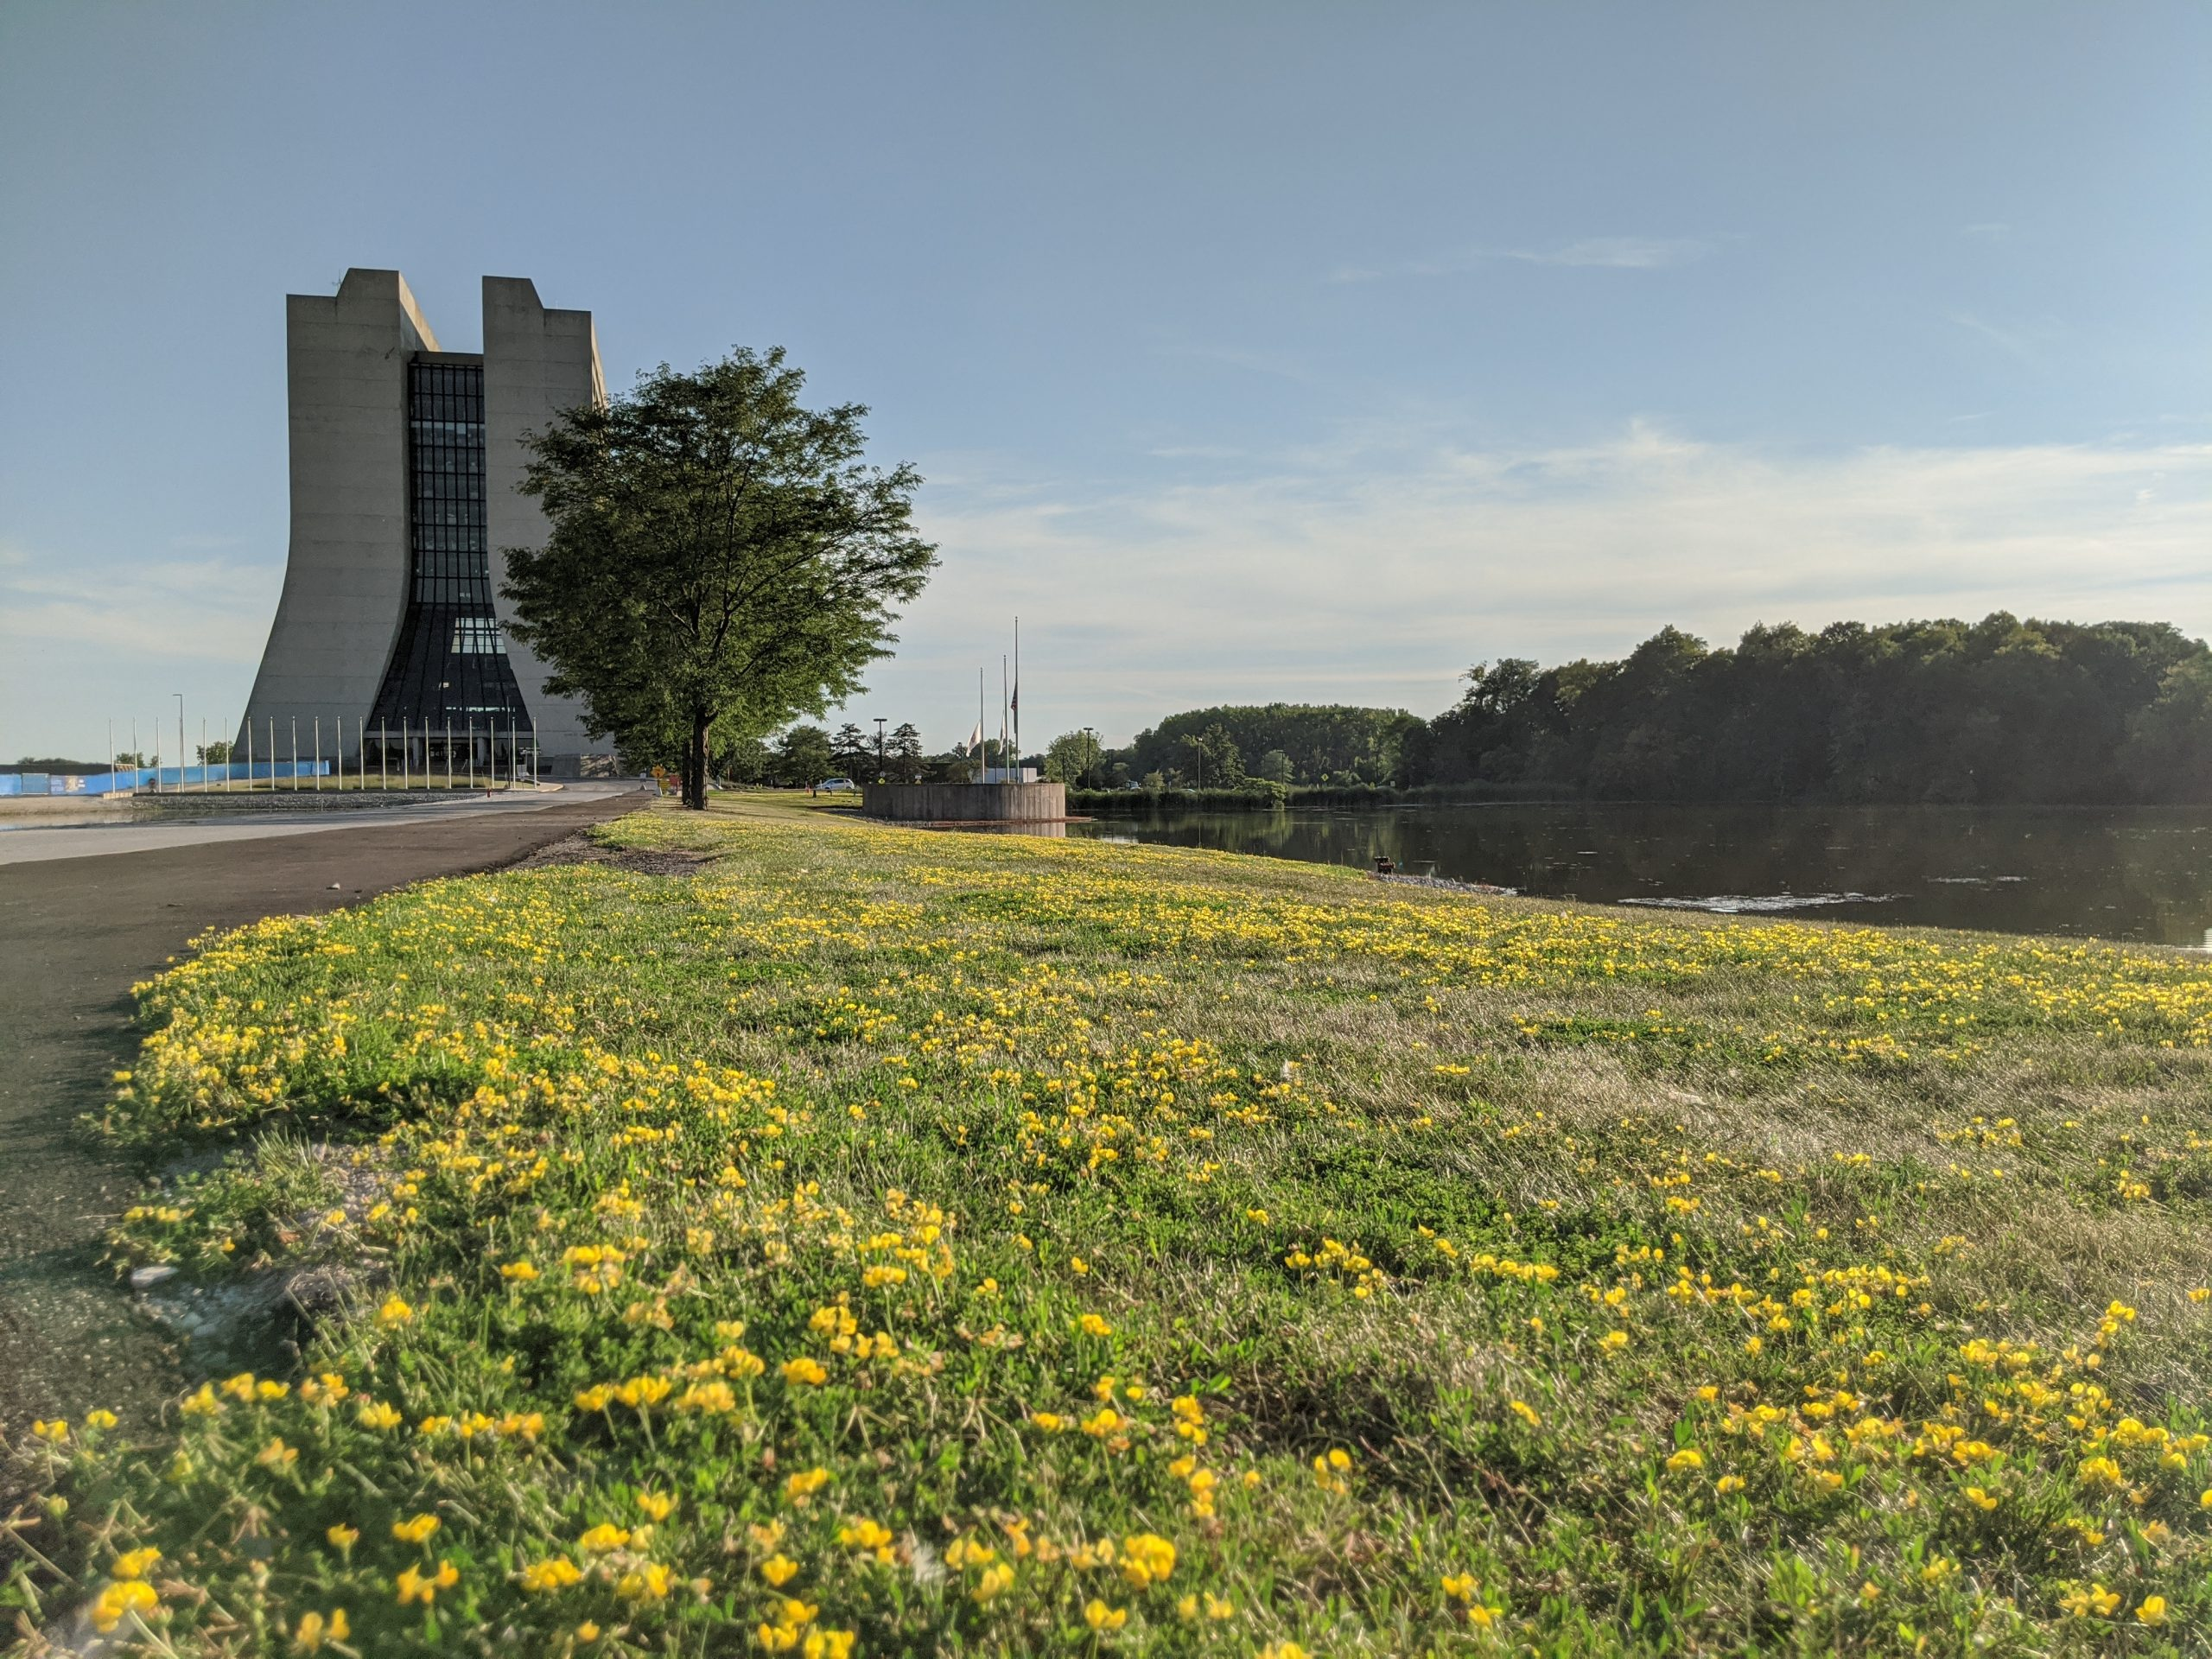 On Aug. 12, Wilson Hall is seen at the edge of summer and a field of bird's foot trefoil. nature, landscape, prairie, flower, plant, sky, building, Wilson Hall, lake, water, summer, pond, bird's foot trefoil, flower Photo: Valerie Higgins